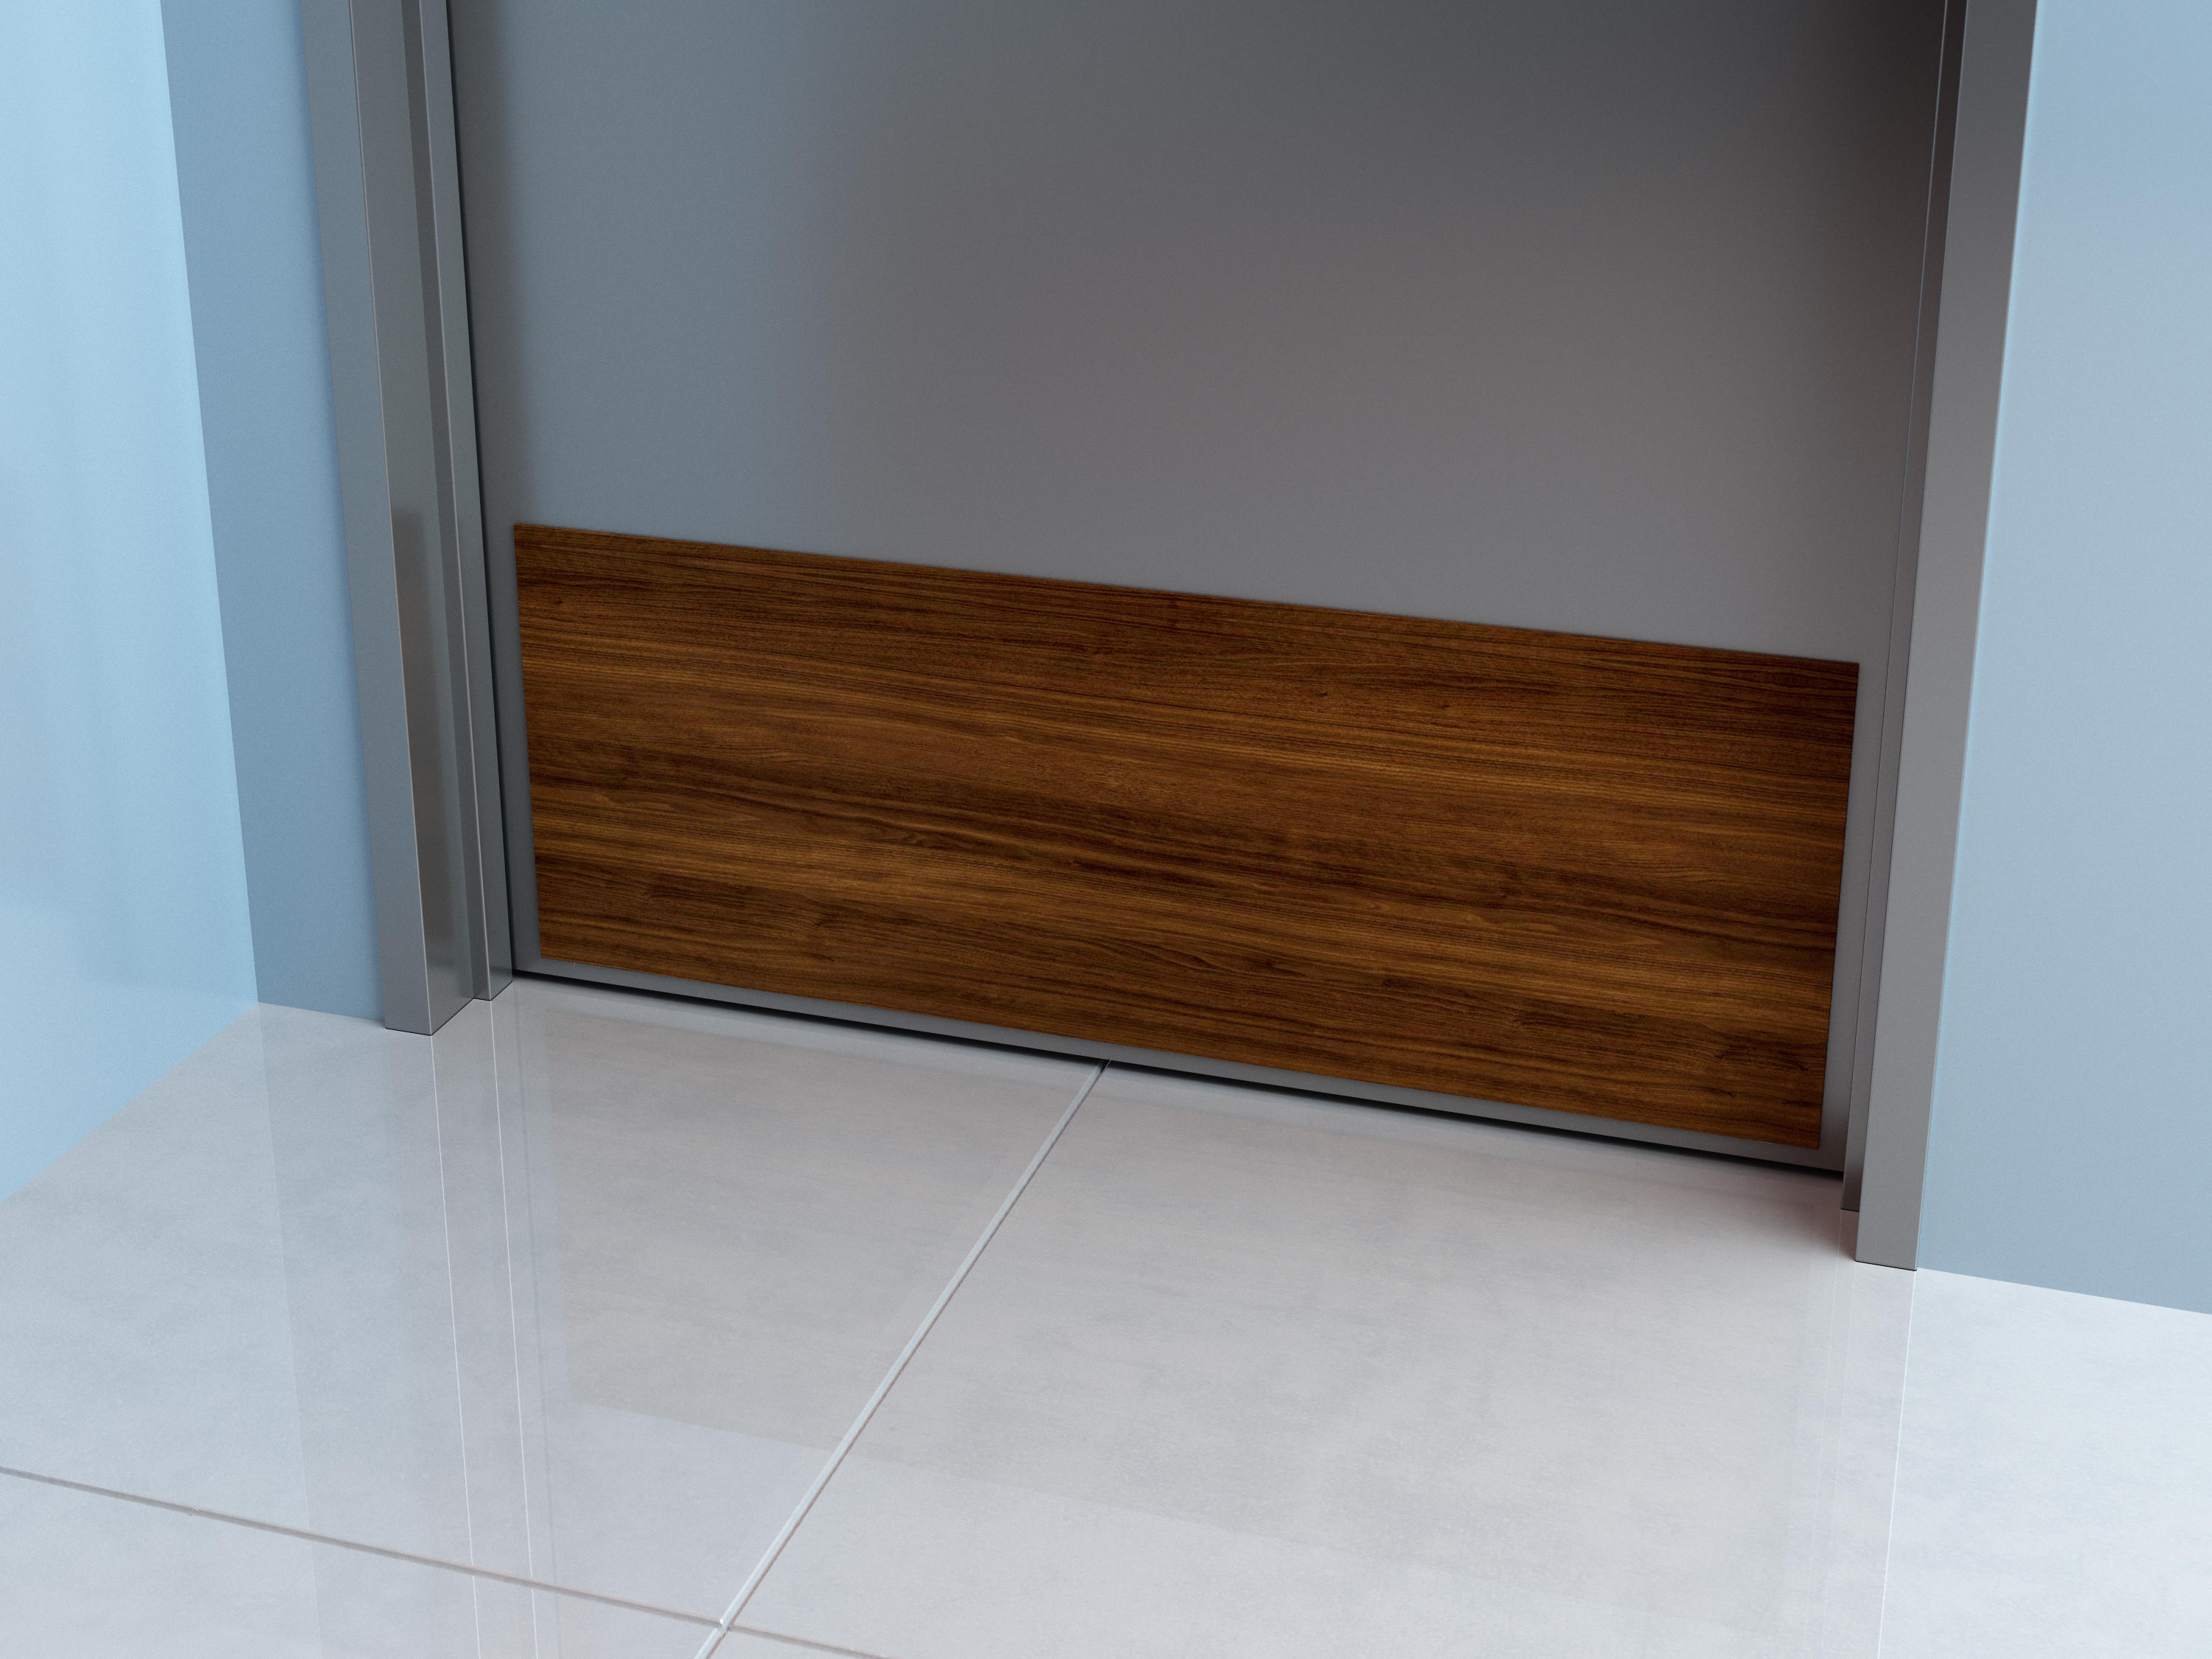 Wood Grain Door and Frame Protection